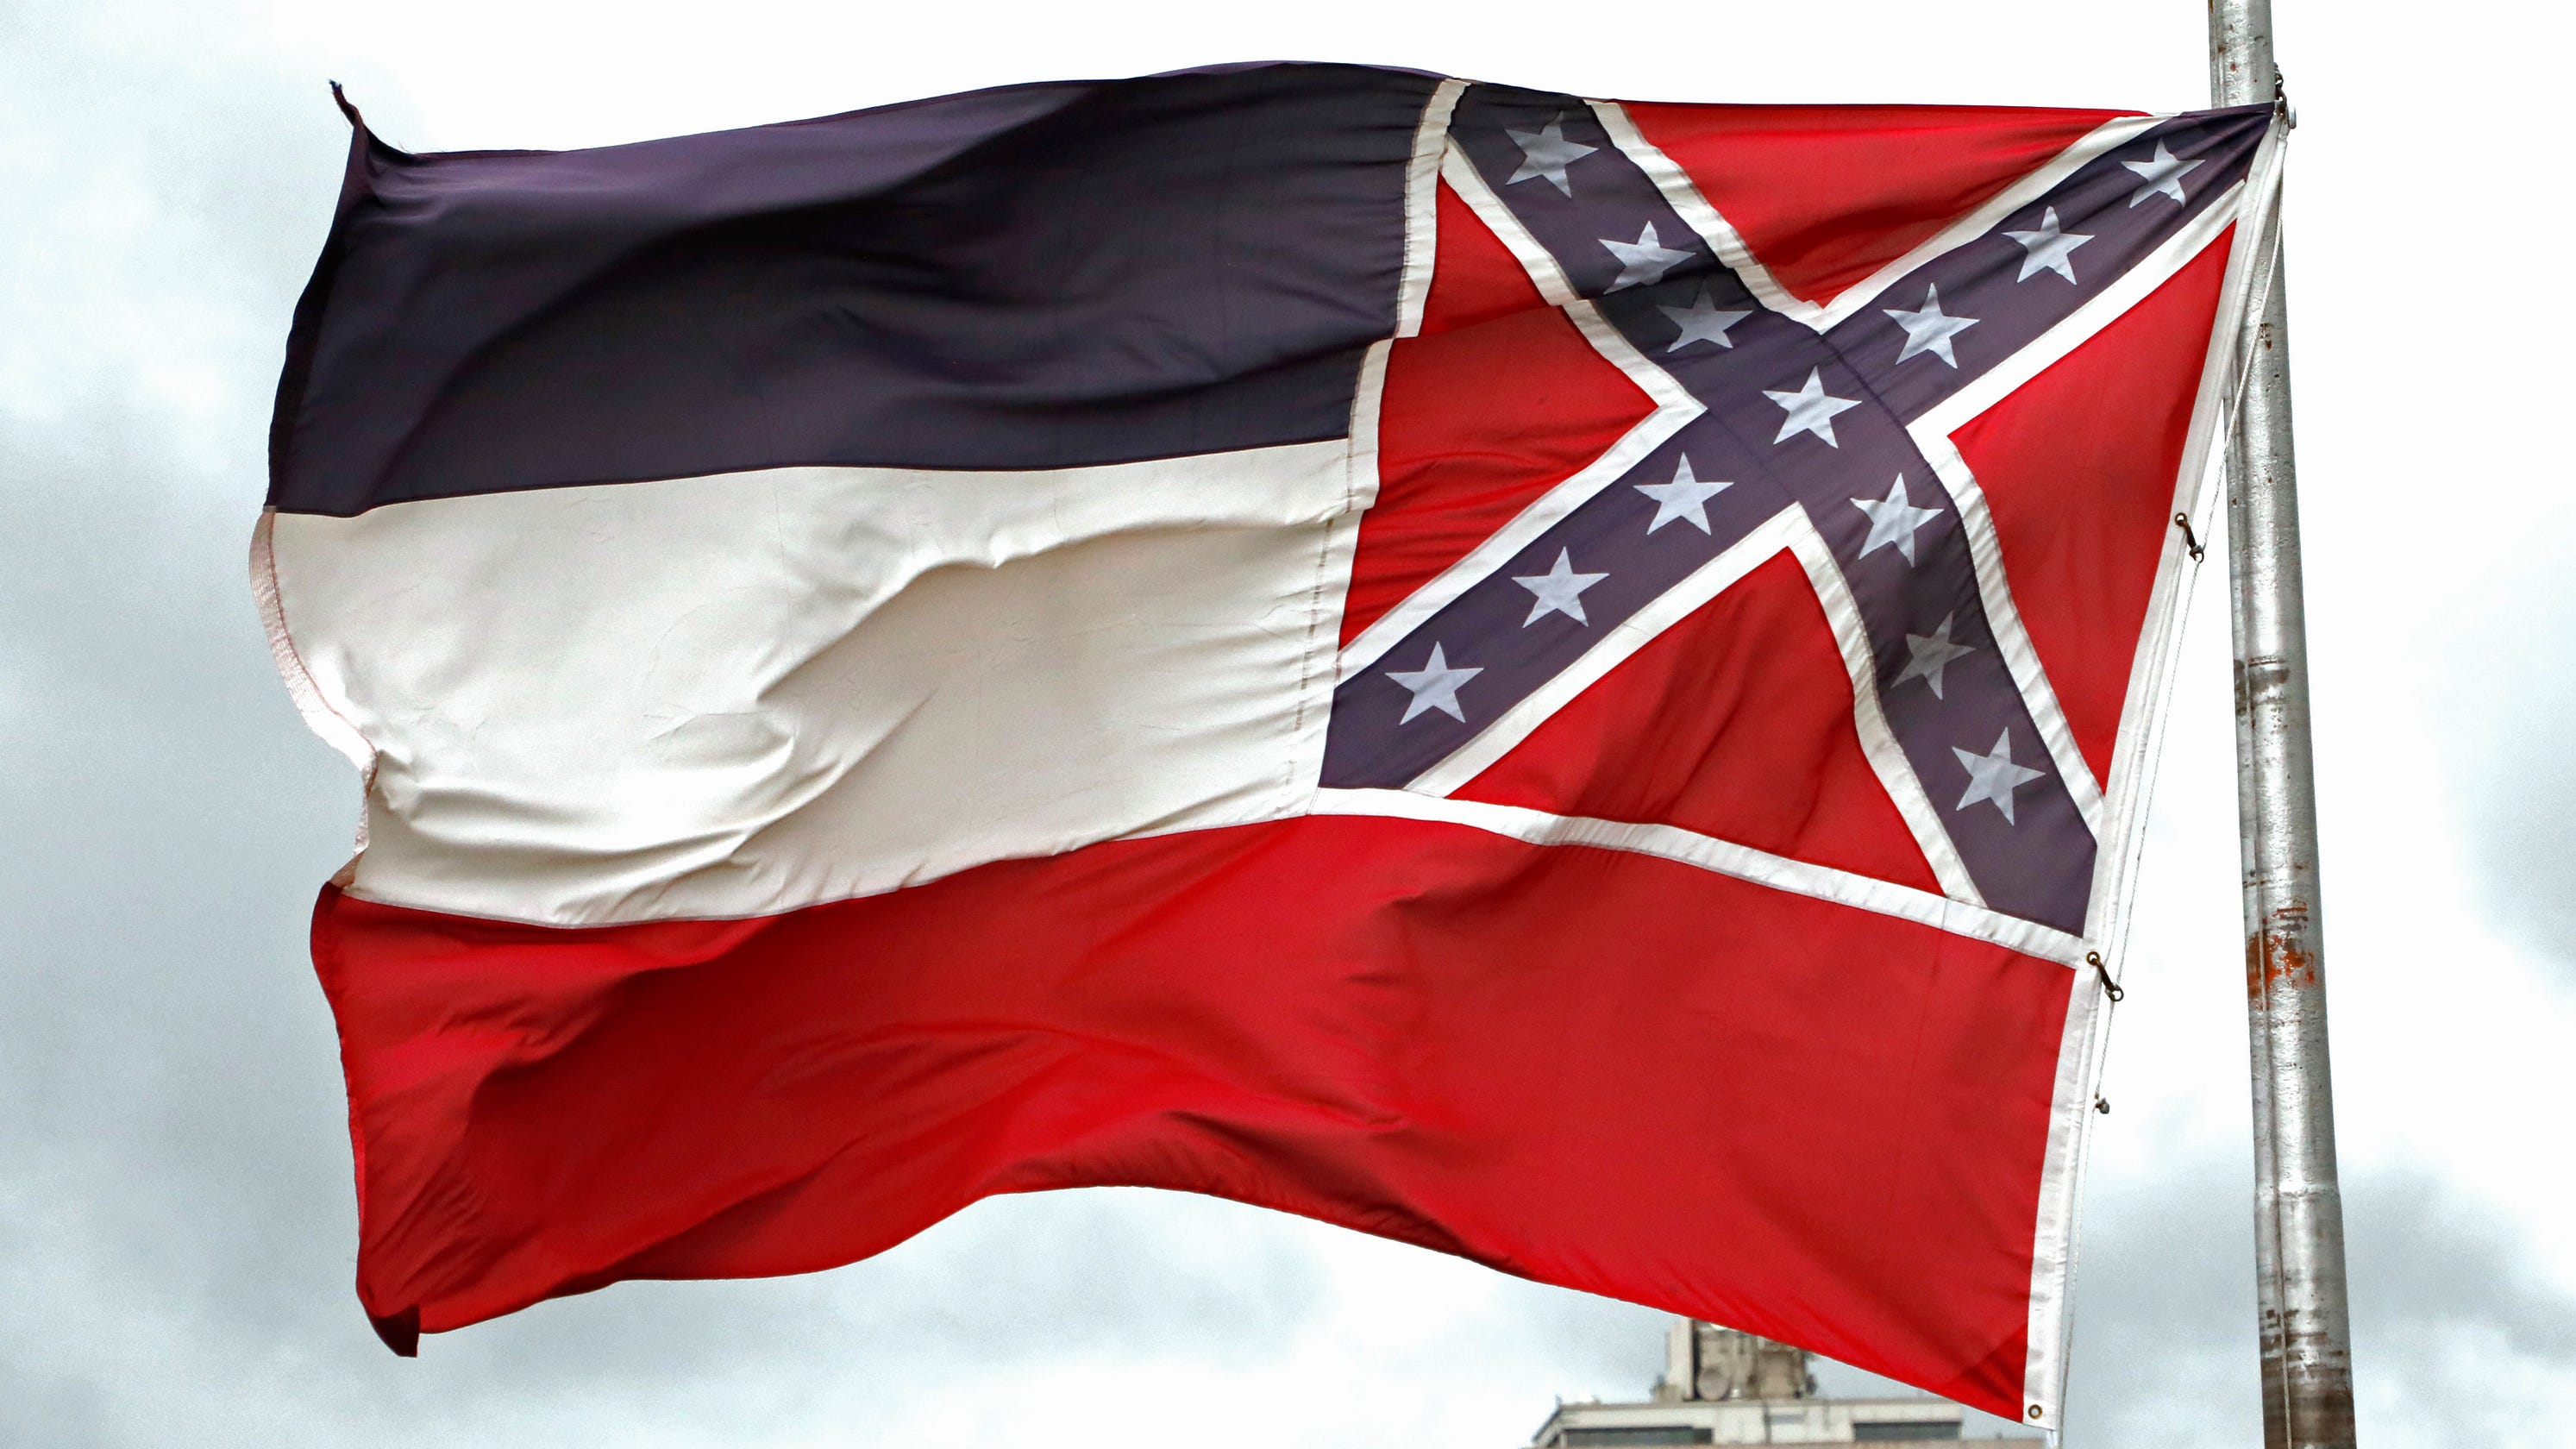 Ole Miss basketball player transferring: 'Proud not to represent that flag anymore,' be associated with Confederacy